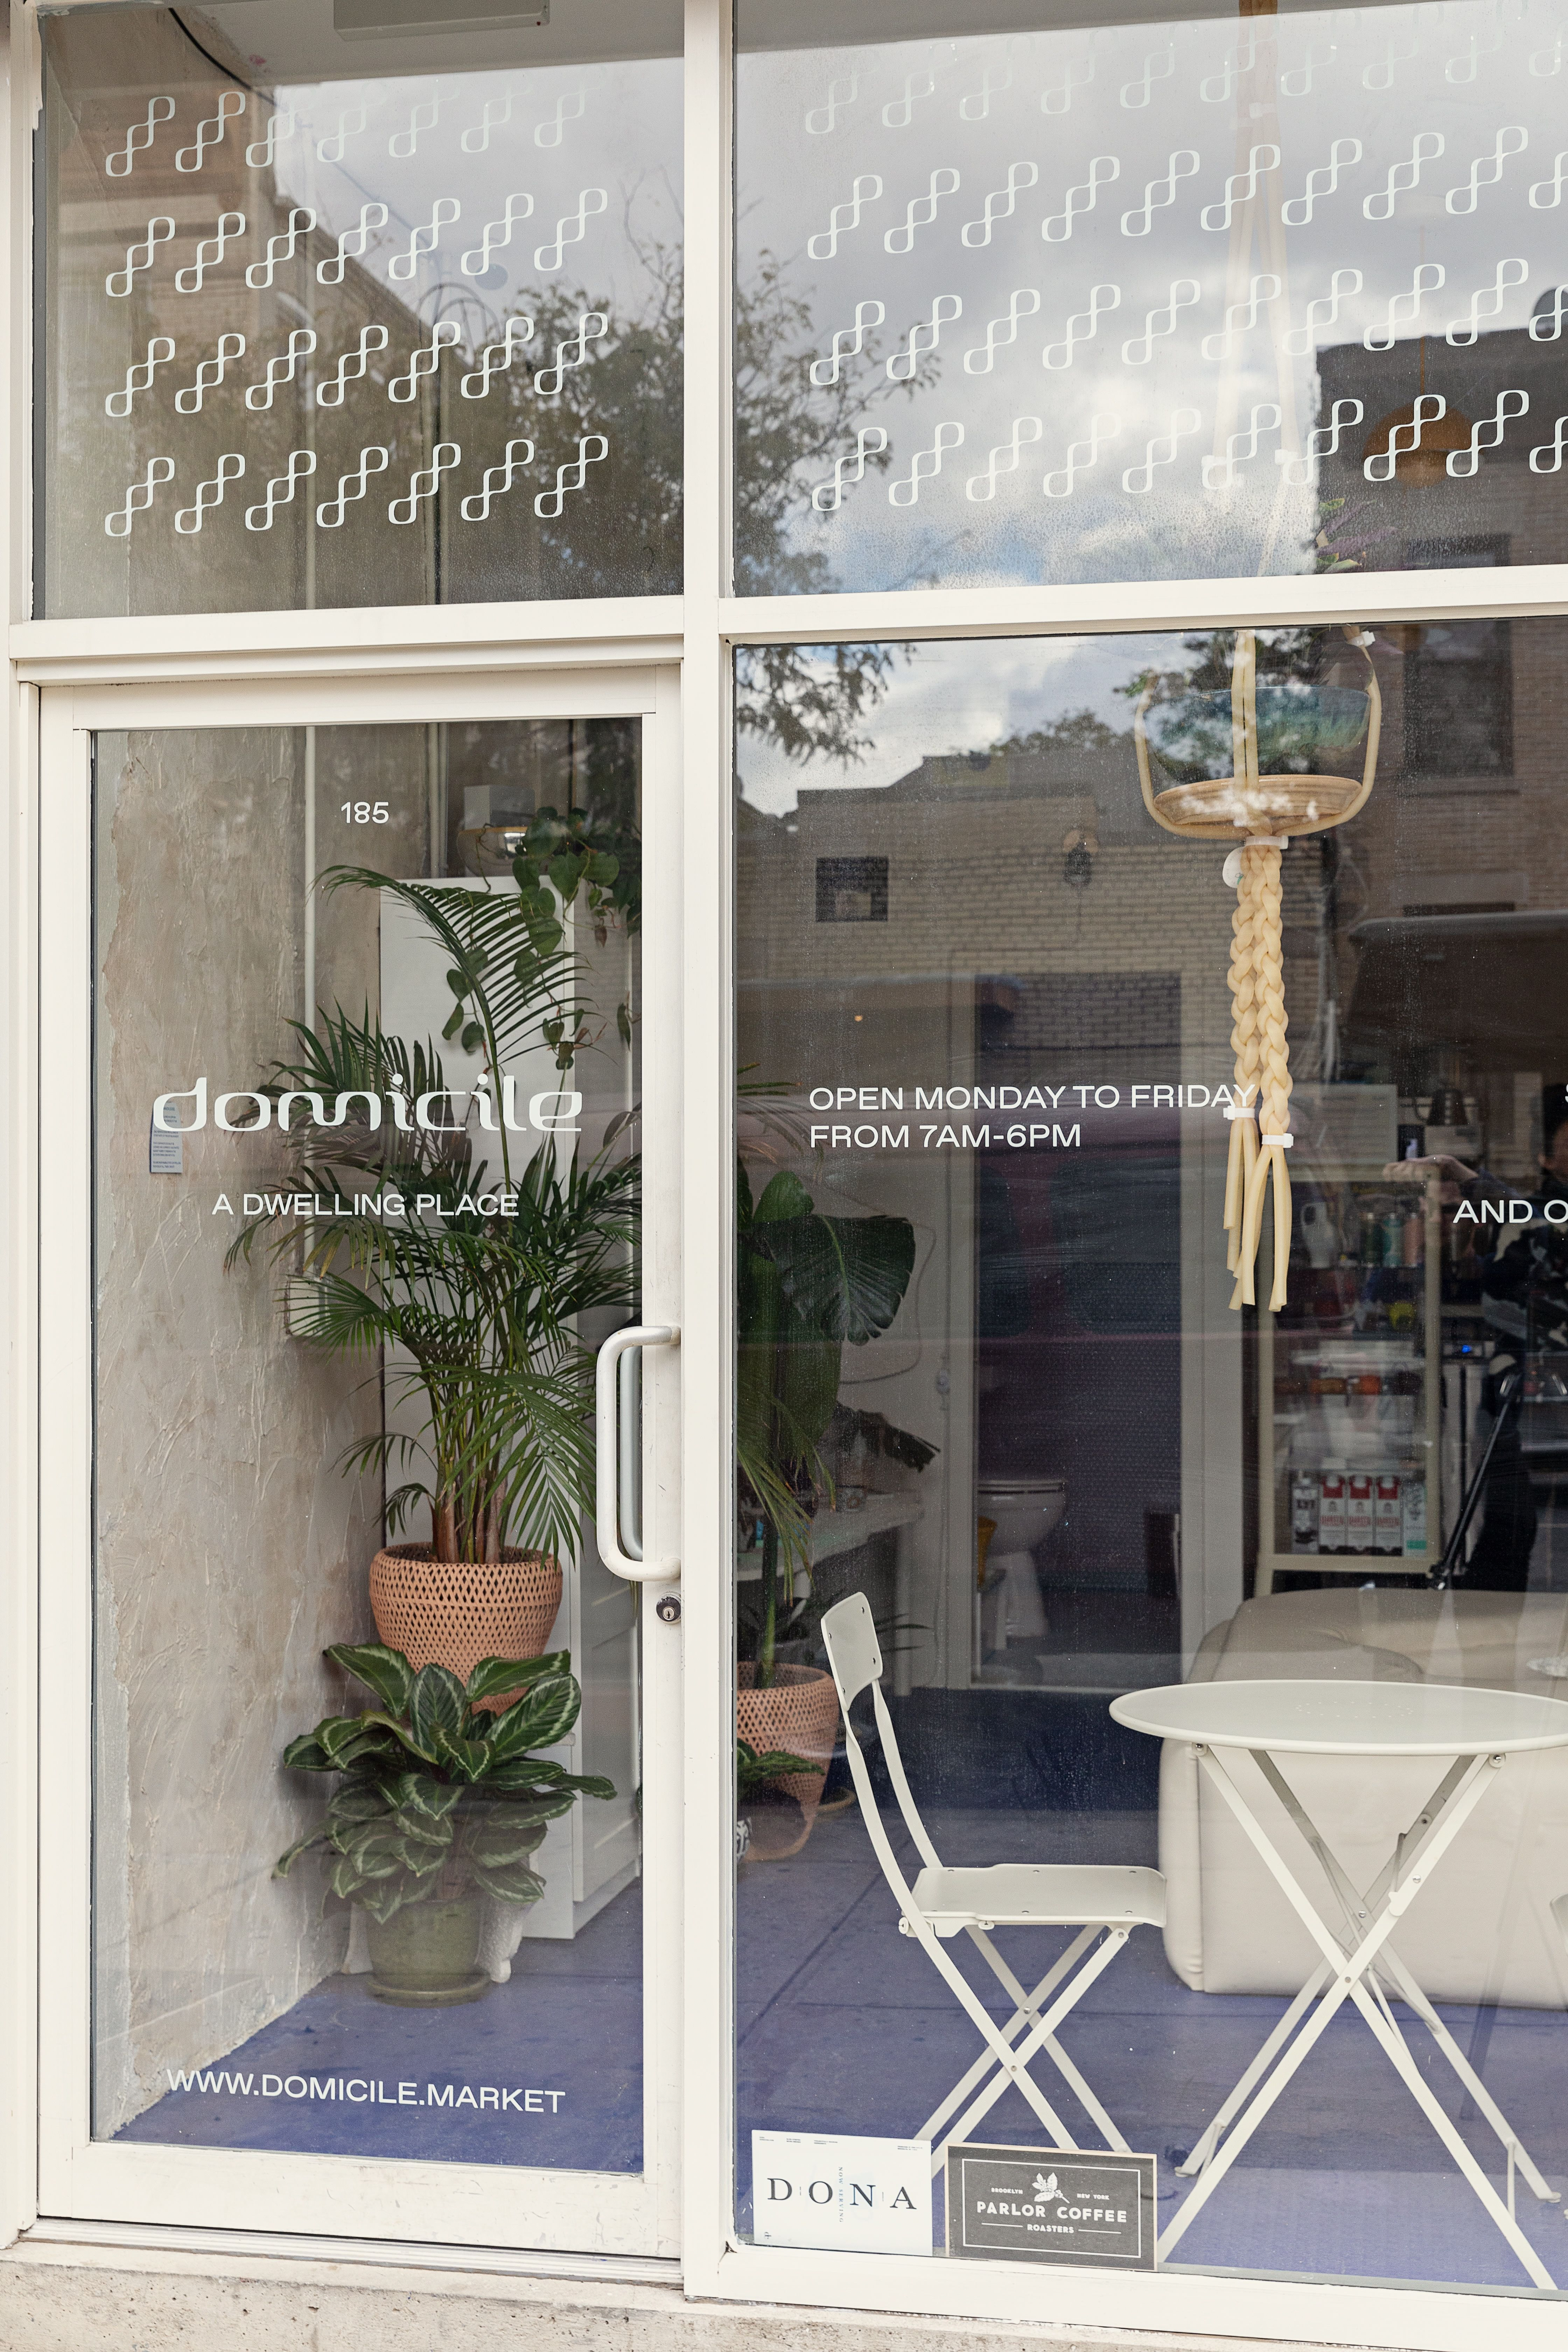 Domicile Cafe Tour - Coffee Shop Brooklyn, New York  Cafe